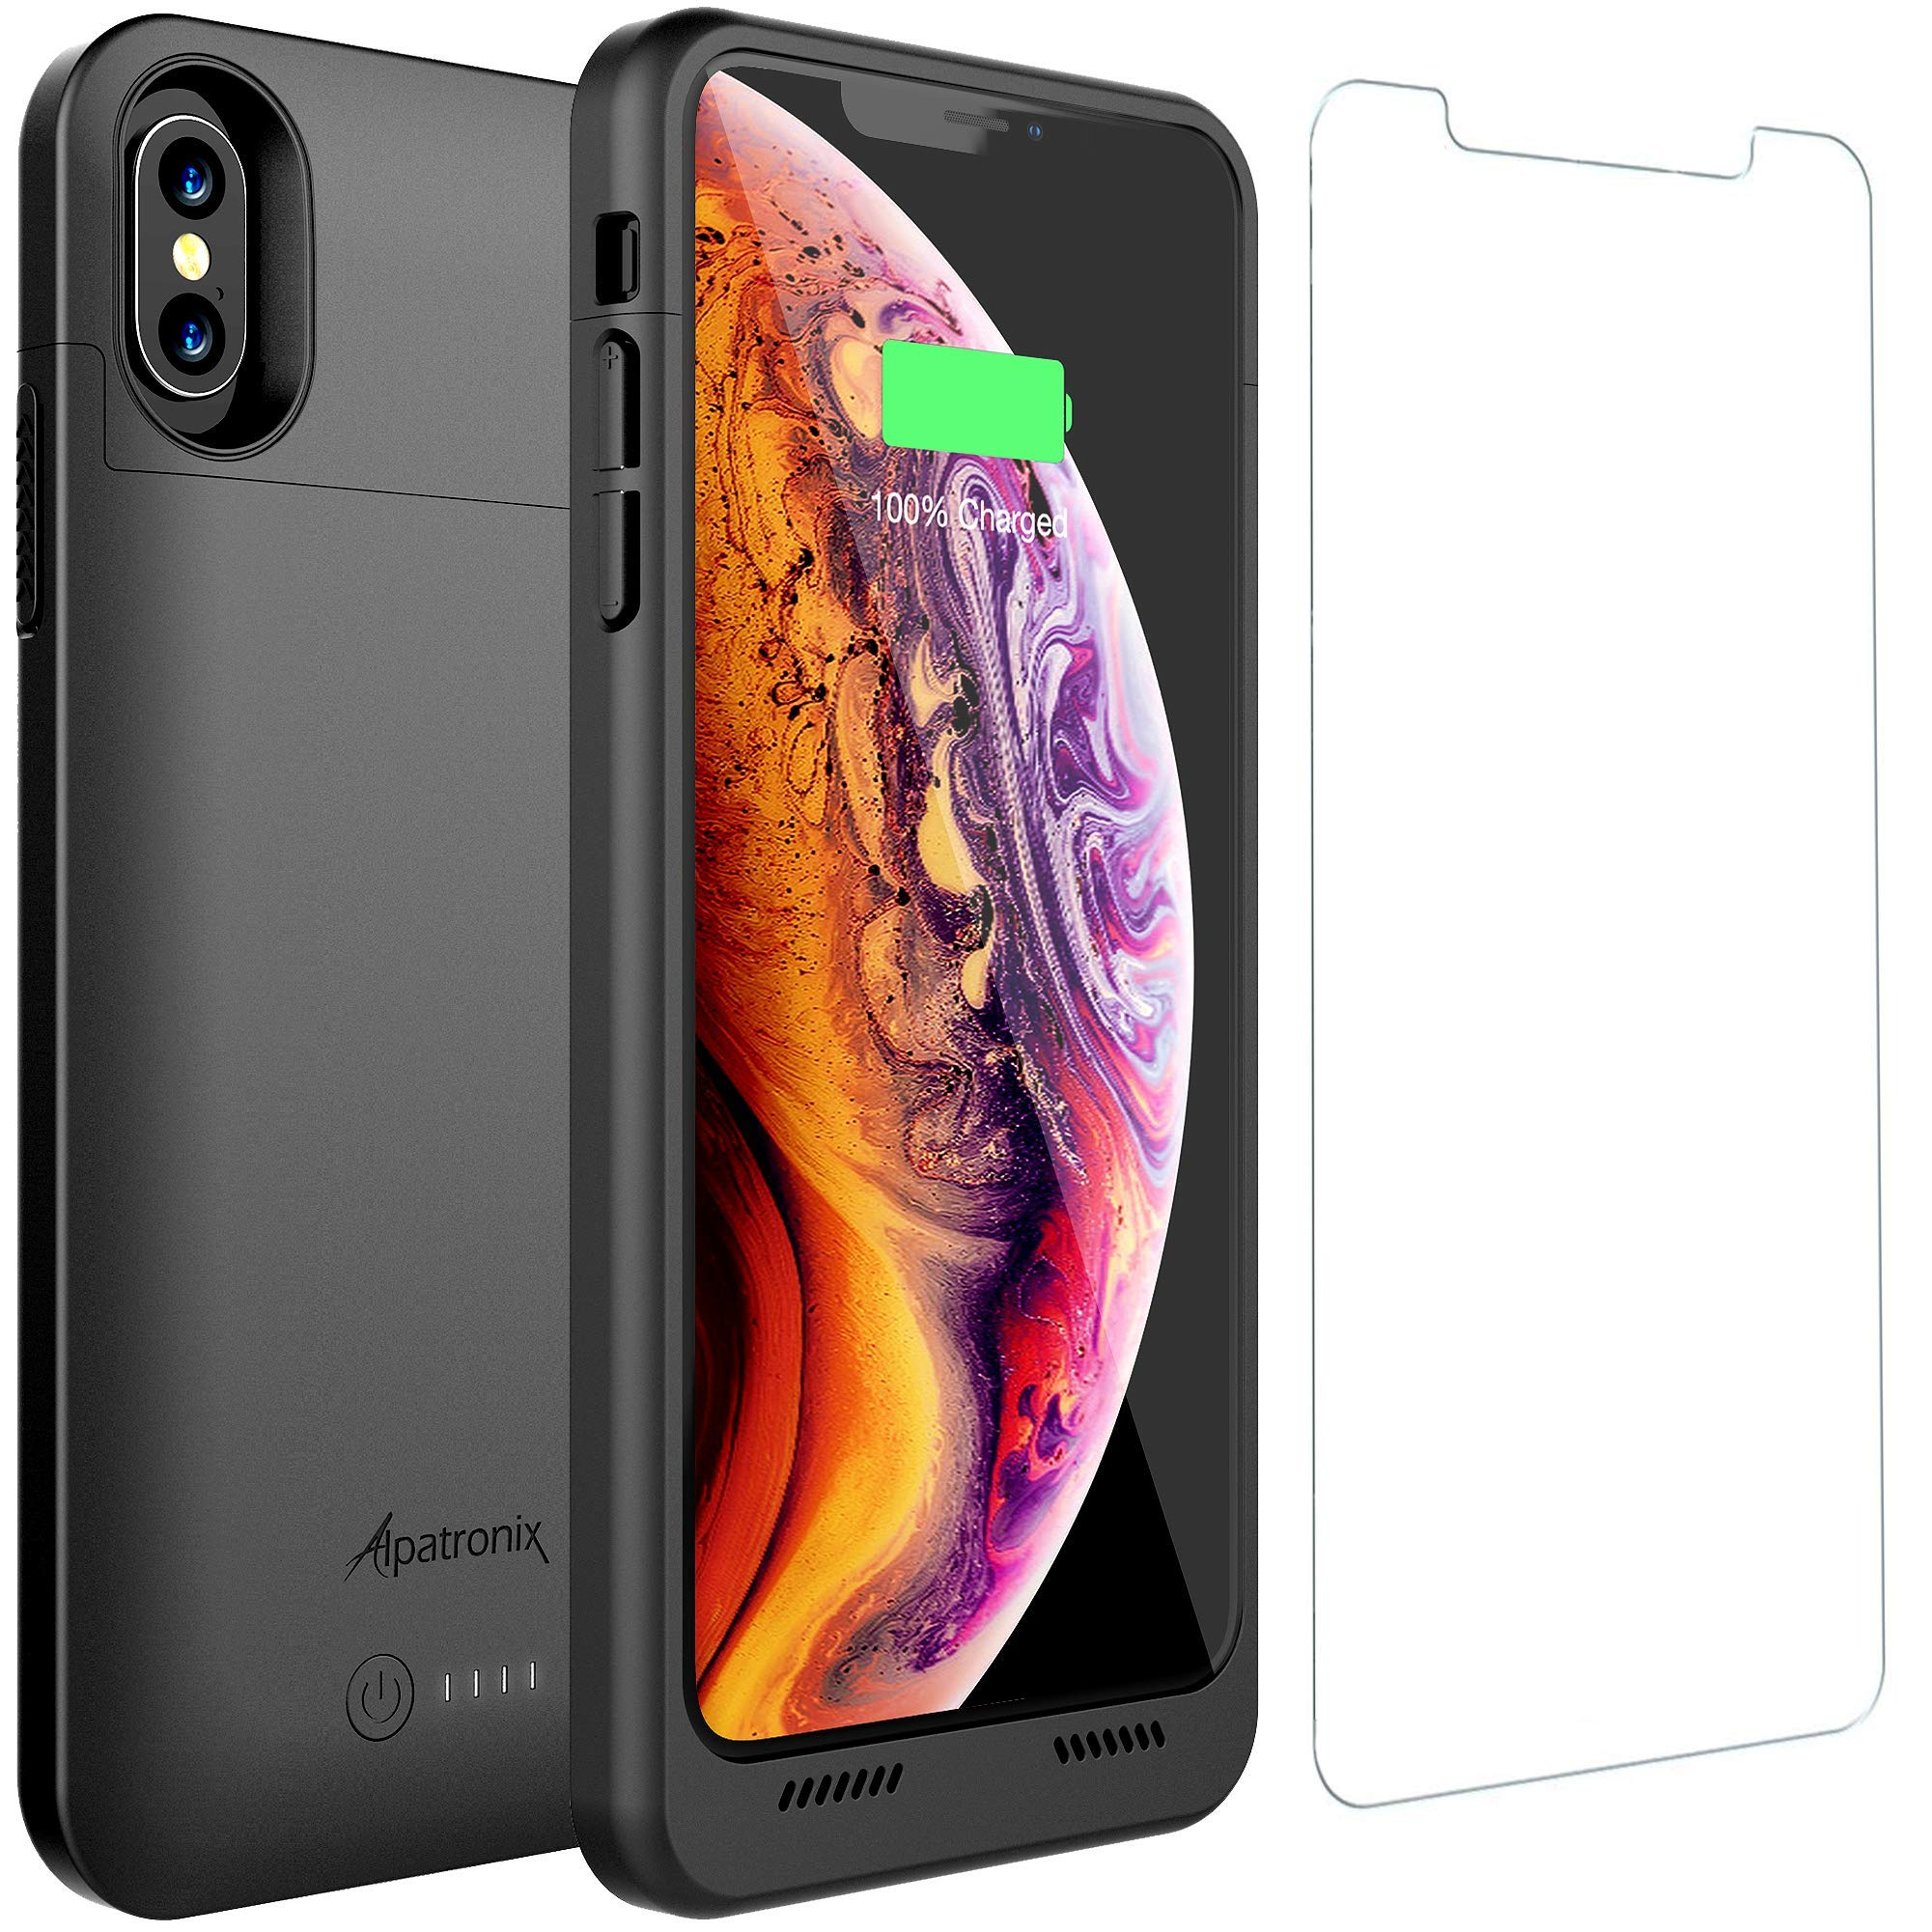 iPhone Xs Max Battery Case with Qi Wireless Charging Compatible, Alpatronix BXX Max 6.5-inch 5000mAh Portable Protective Rechargeable Extended Charger for iPhone Xs Max Juice Bank Power Case - Black